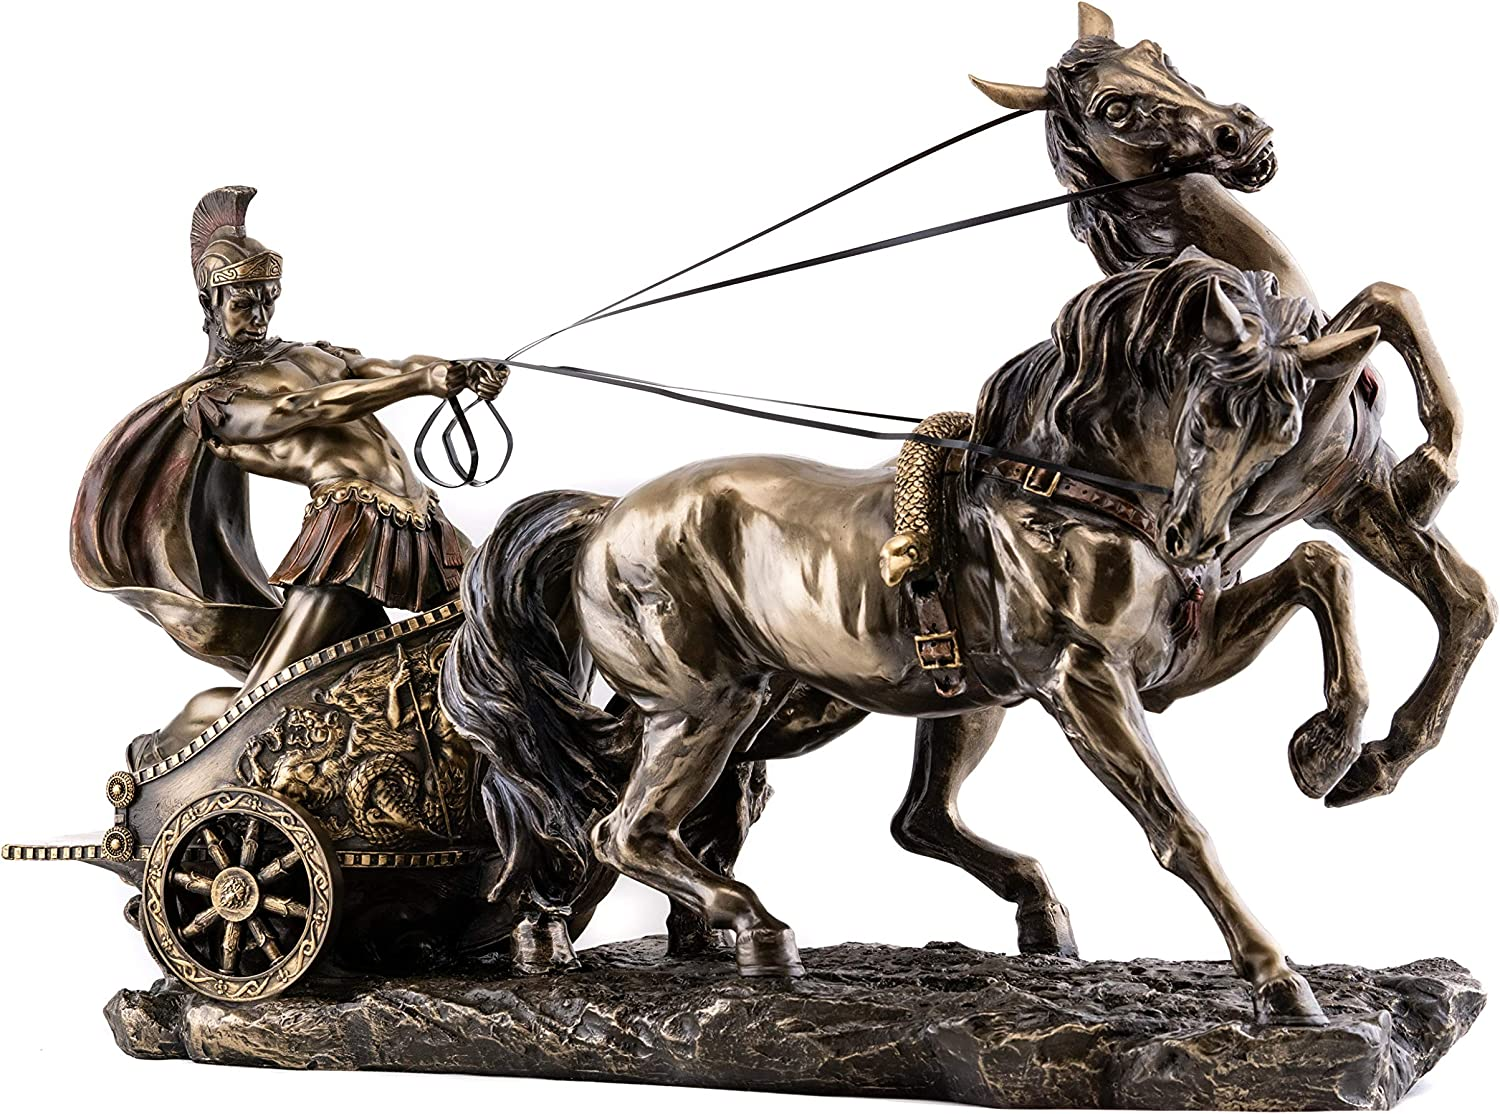 Top Collection Large Ancient Roman Chariot Statue -Politician and Military General Julius Caesar Sculpture in Premium Cold Cast Bronze-15.75-Inch Collectible Museum Grade Horse Carriage Figurine